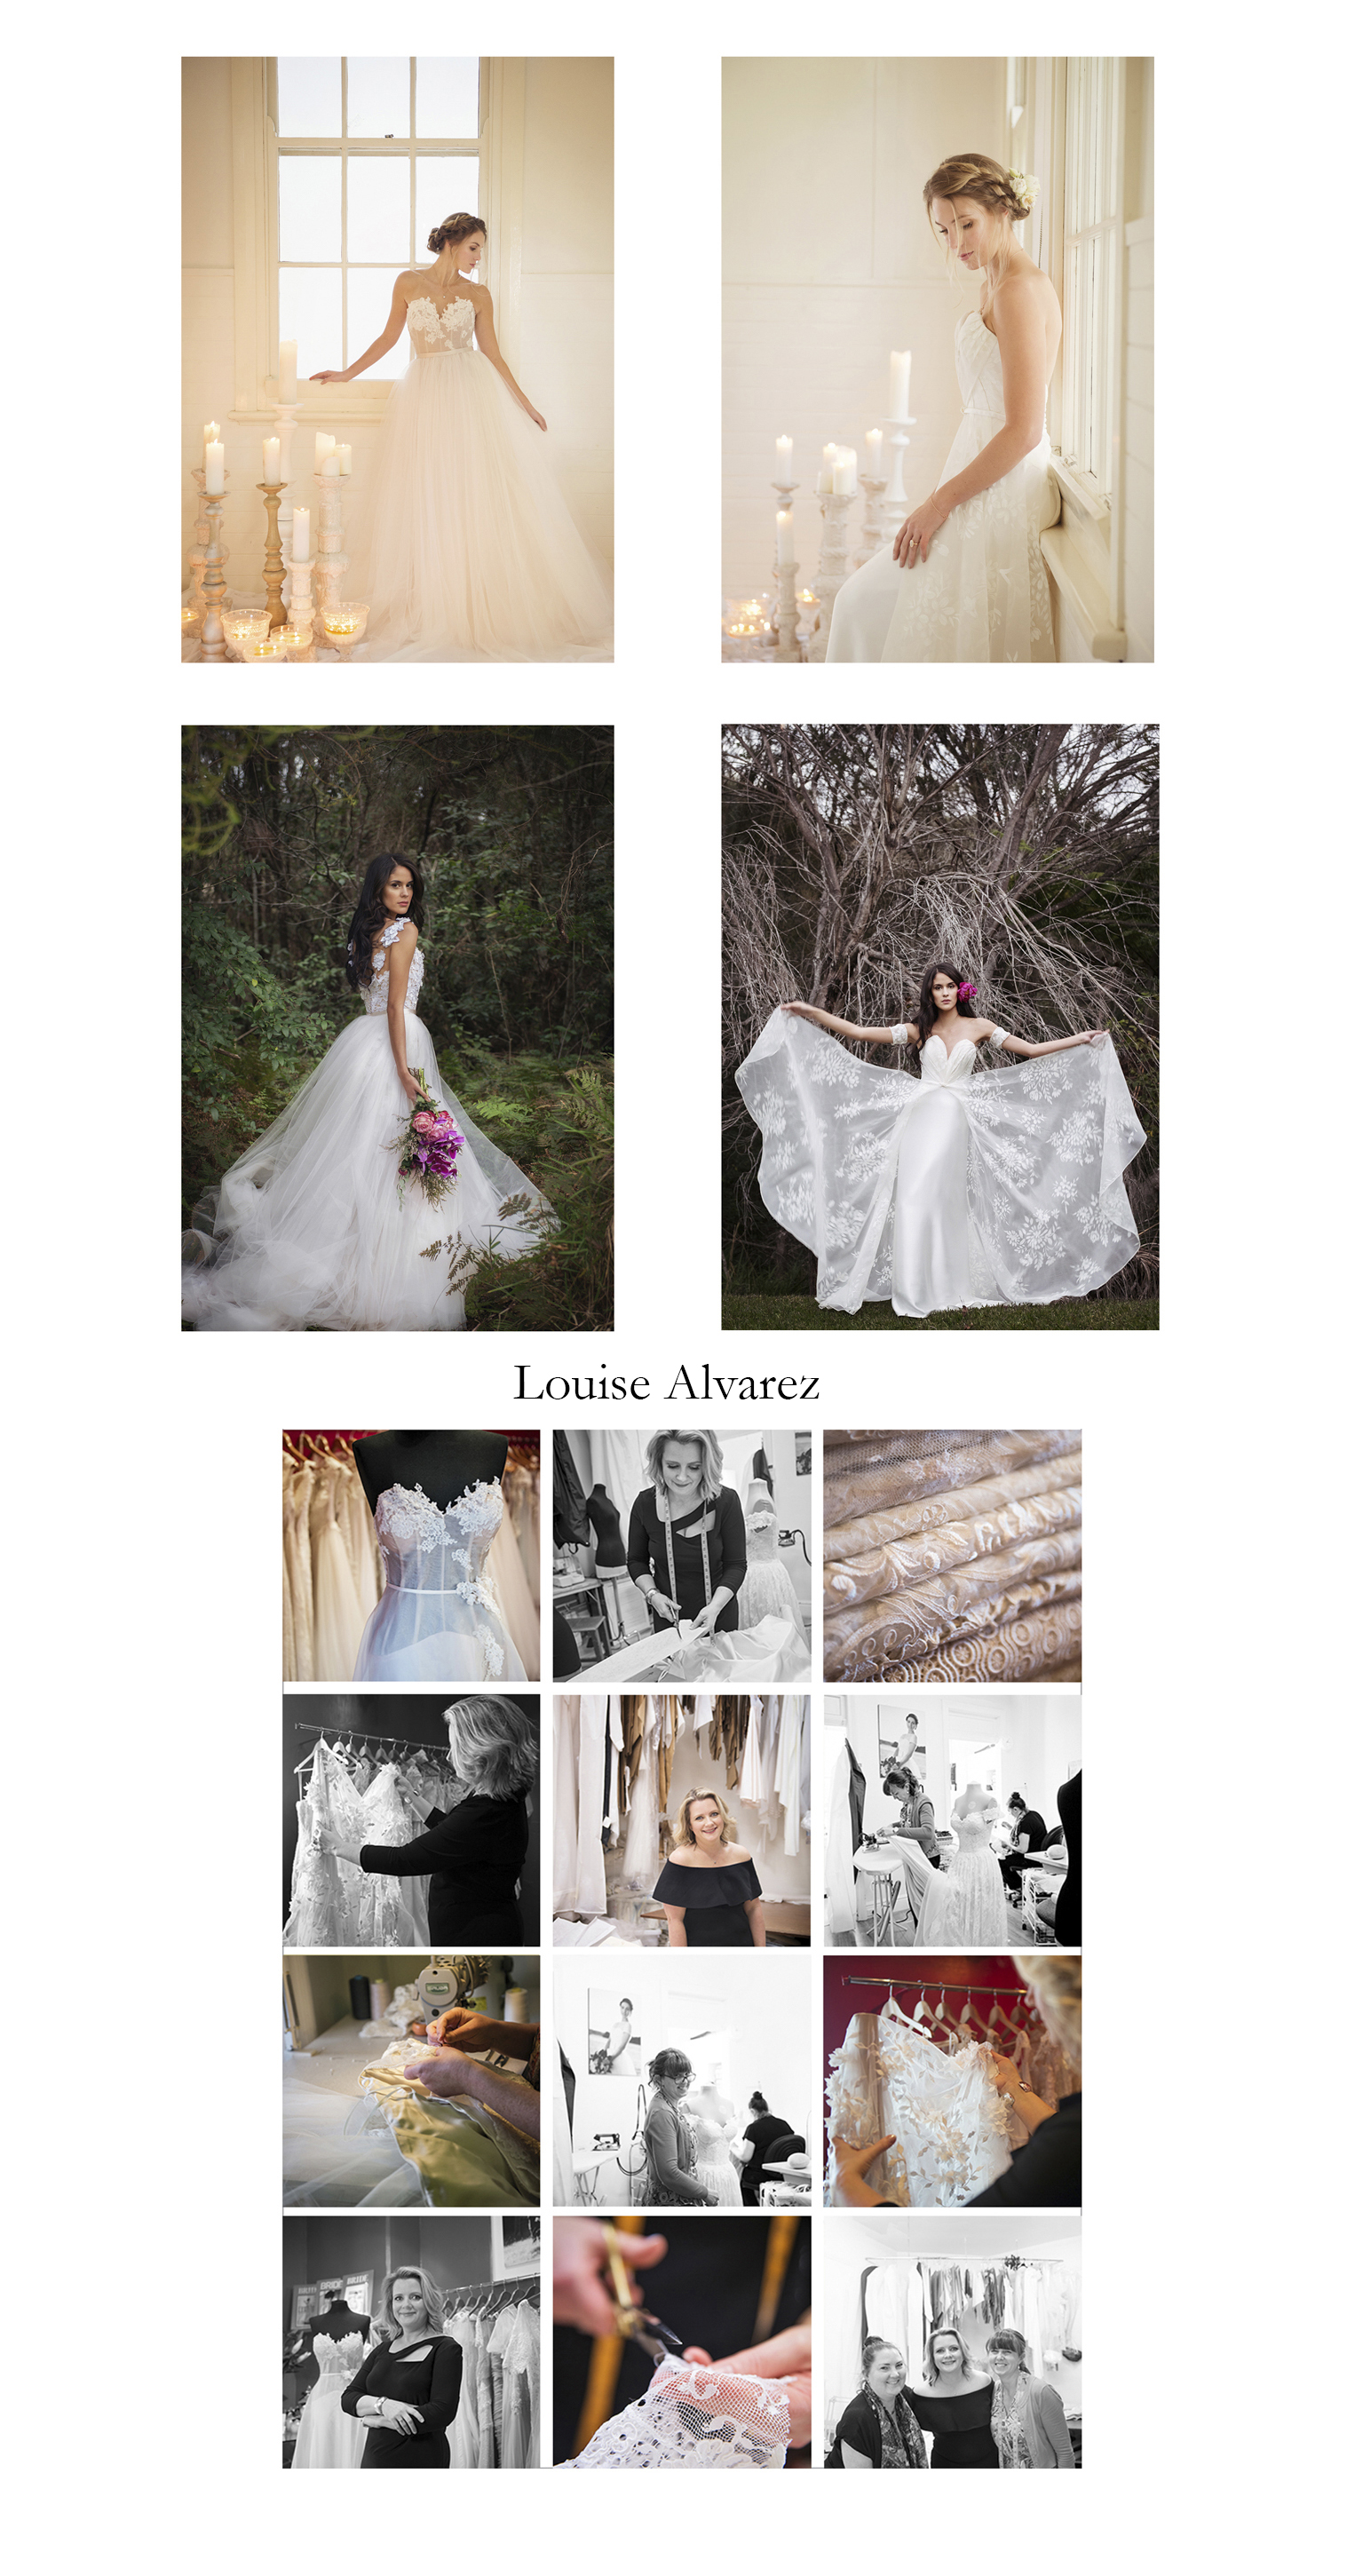 Louise Alvarez Couture Bridal and Evening Wear designer based on the Sydney North Shore  Images for editorial and social media content